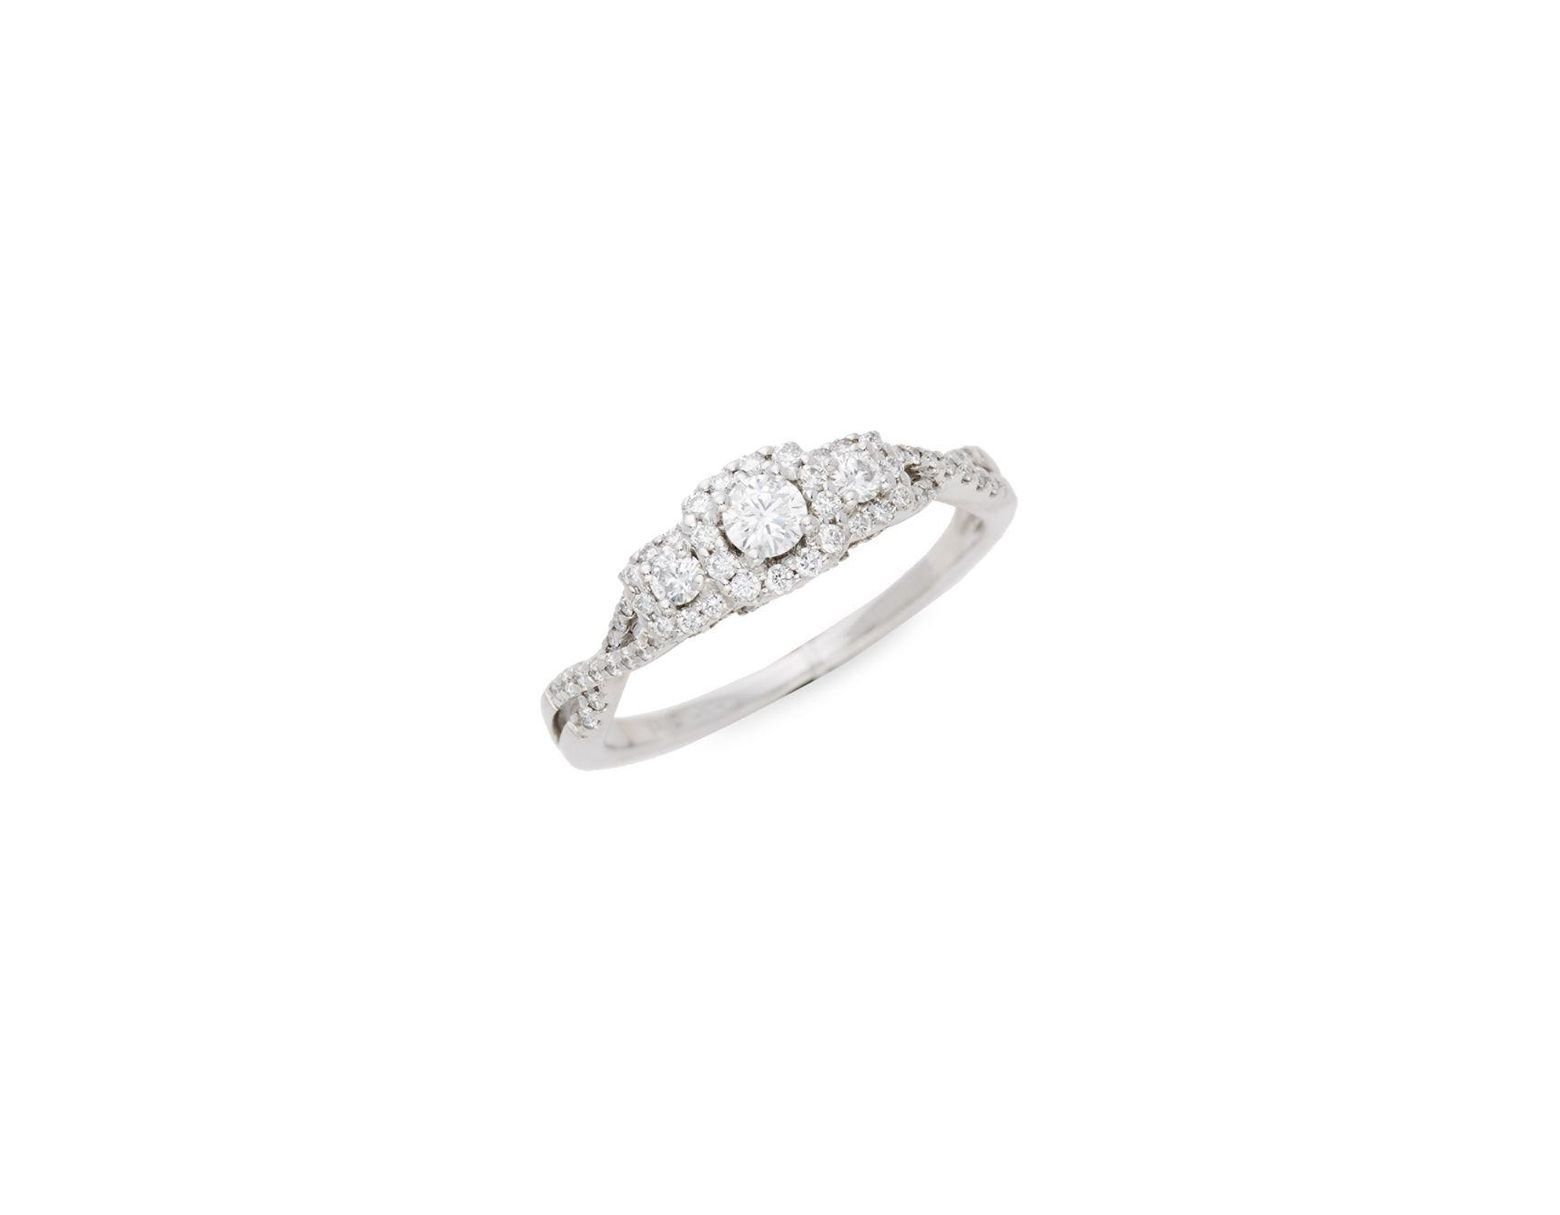 2185f0fc5d269 Saks Fifth Avenue Forever Beautiful 14k White Gold & Diamond Ring in ...